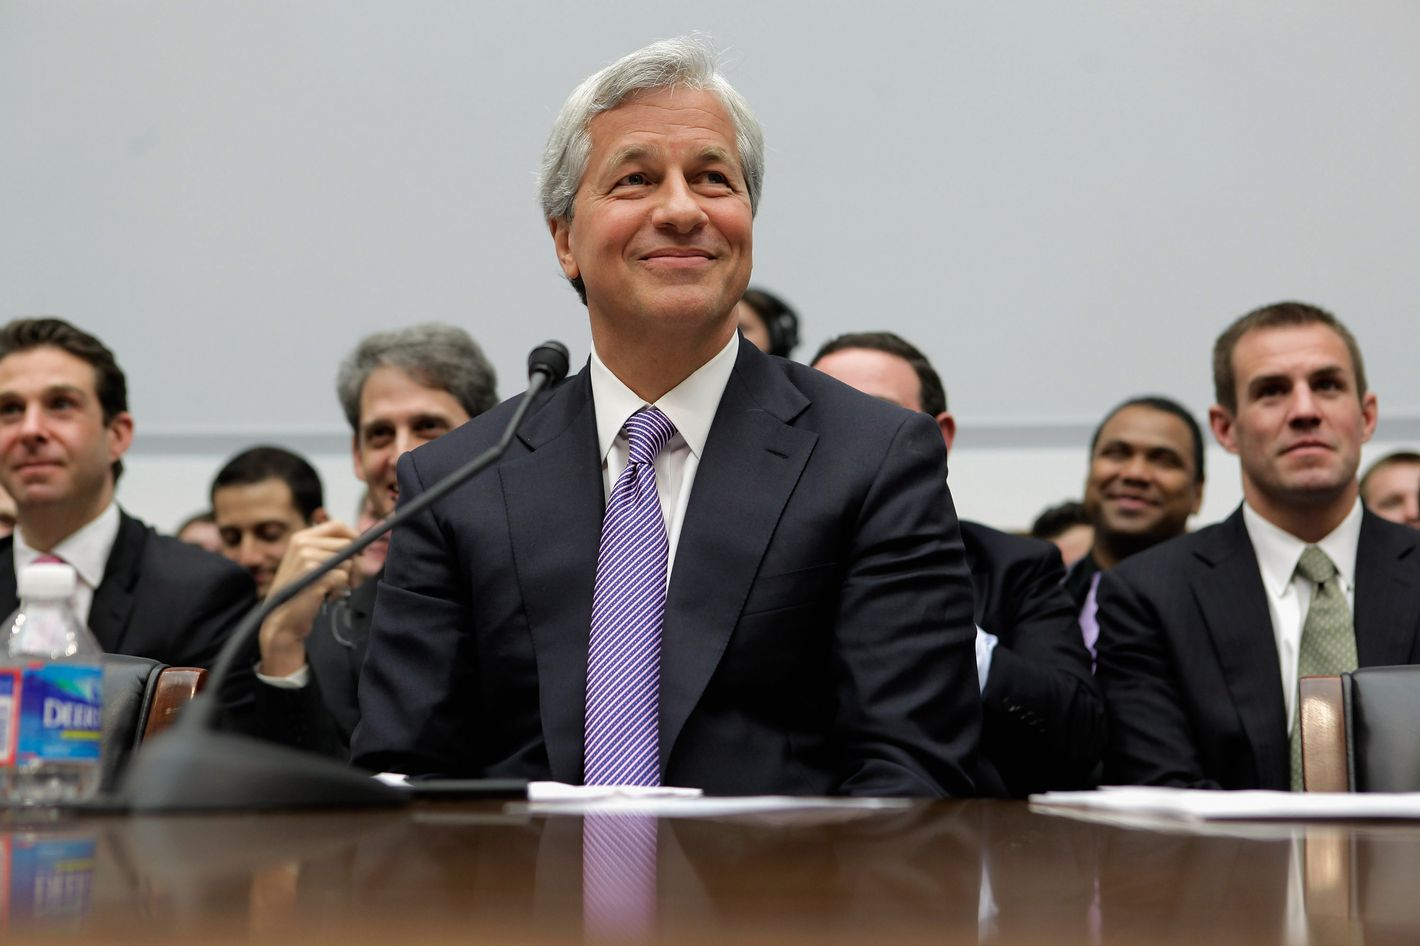 JPMorgan Chase & Co Chairman and CEO Jamie Dimon testifies before the House Financial Services Committee on Capitol Hill June 19, 2012 in Washington, DC. After testifying before the Senate last week, Dimon answered questions from the committee about his company's $2 billion trading loss earlier this year.